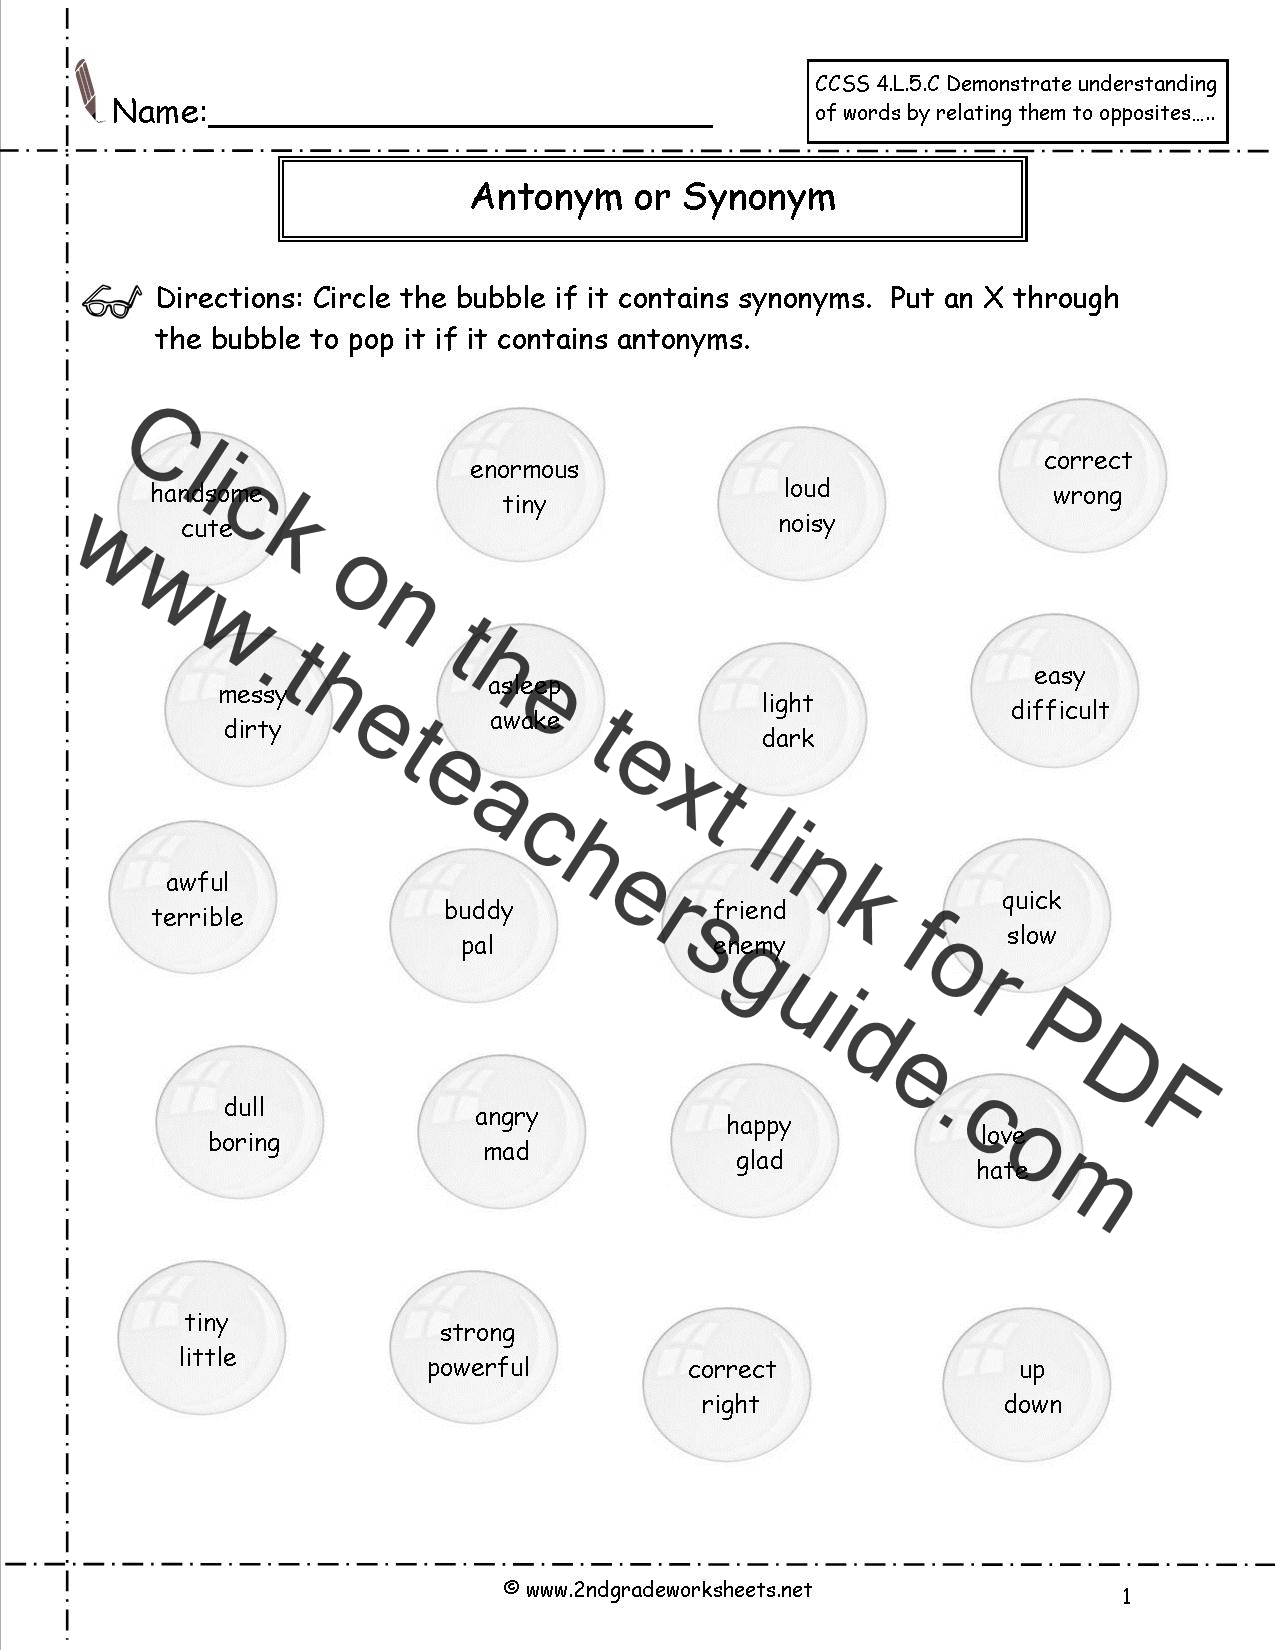 worksheet Antonym And Synonym Worksheets synonyms and antonyms worksheets worksheet